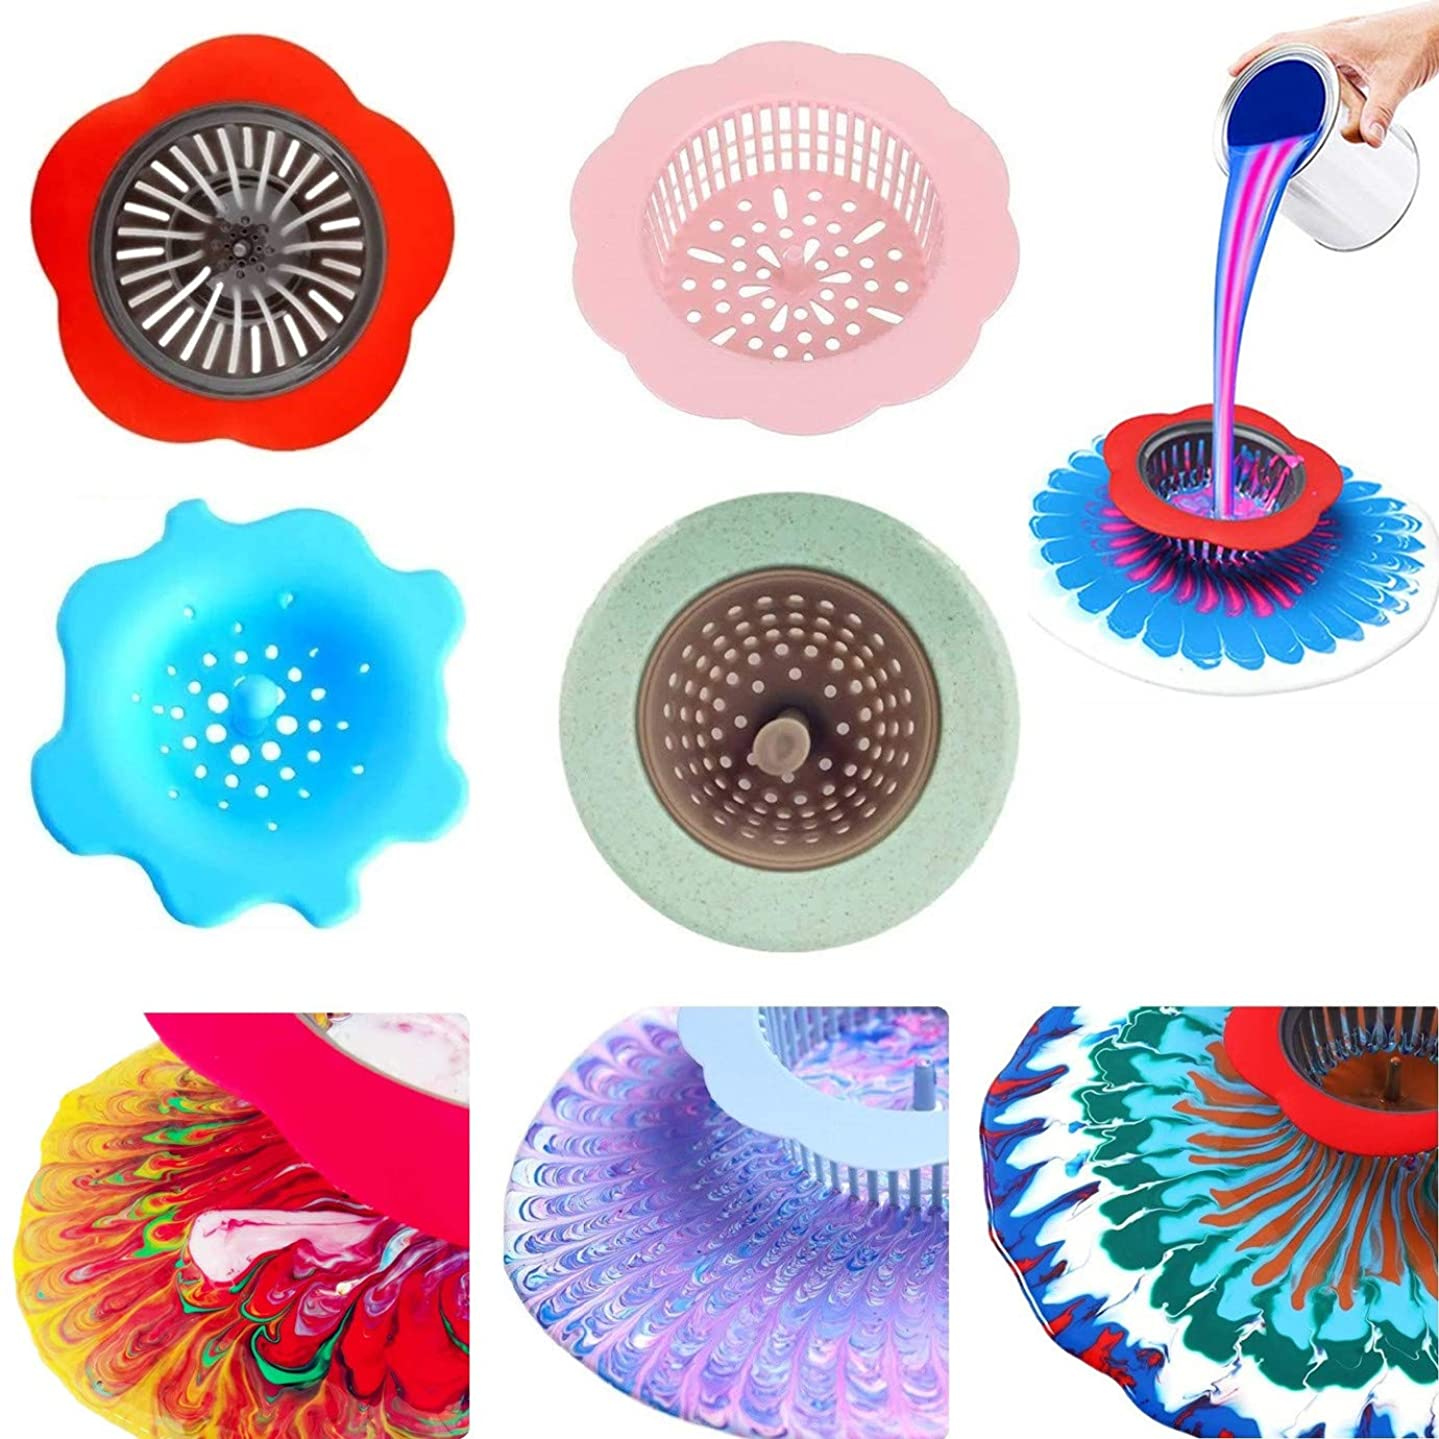 ONEST 4 PCS Acrylic Pouring Strainers, Plastic Flower Strainers, Silicone Pouring Drain, for Pouring Acrylic Paint and Creating Unique Patterns and Designs